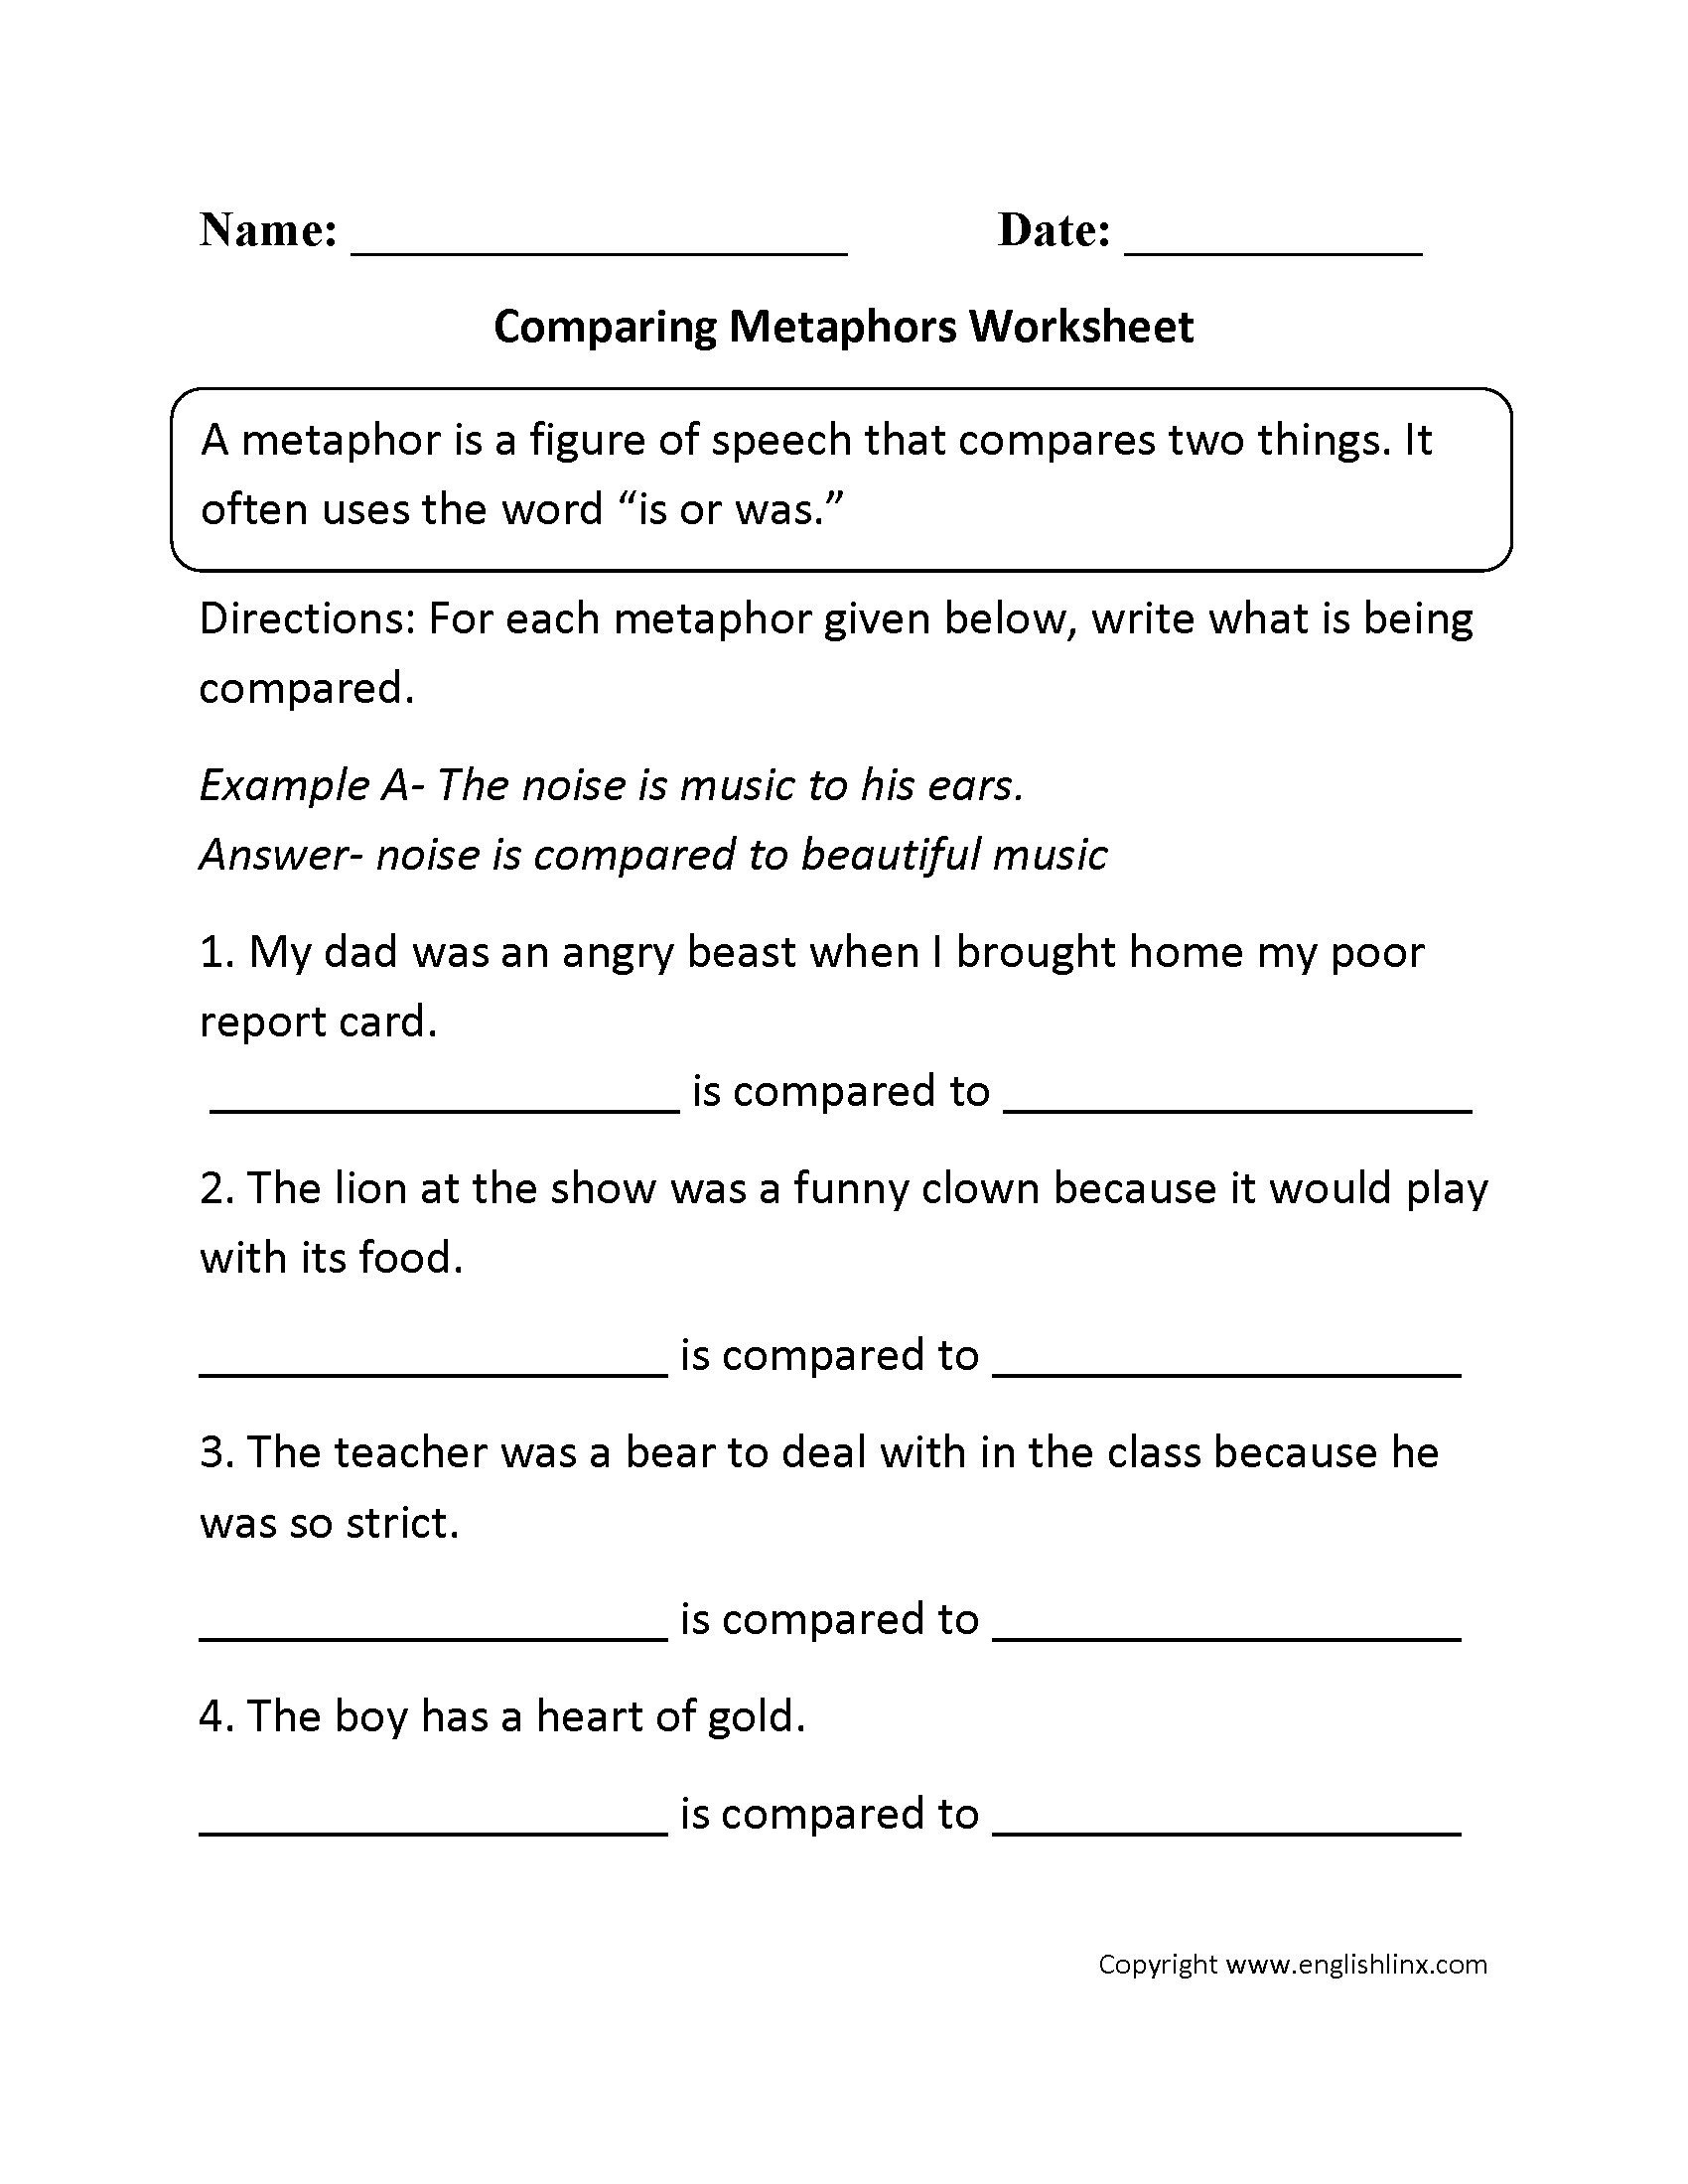 worksheet Metaphors Worksheets englishlinx com metaphors worksheets comparing worksheet